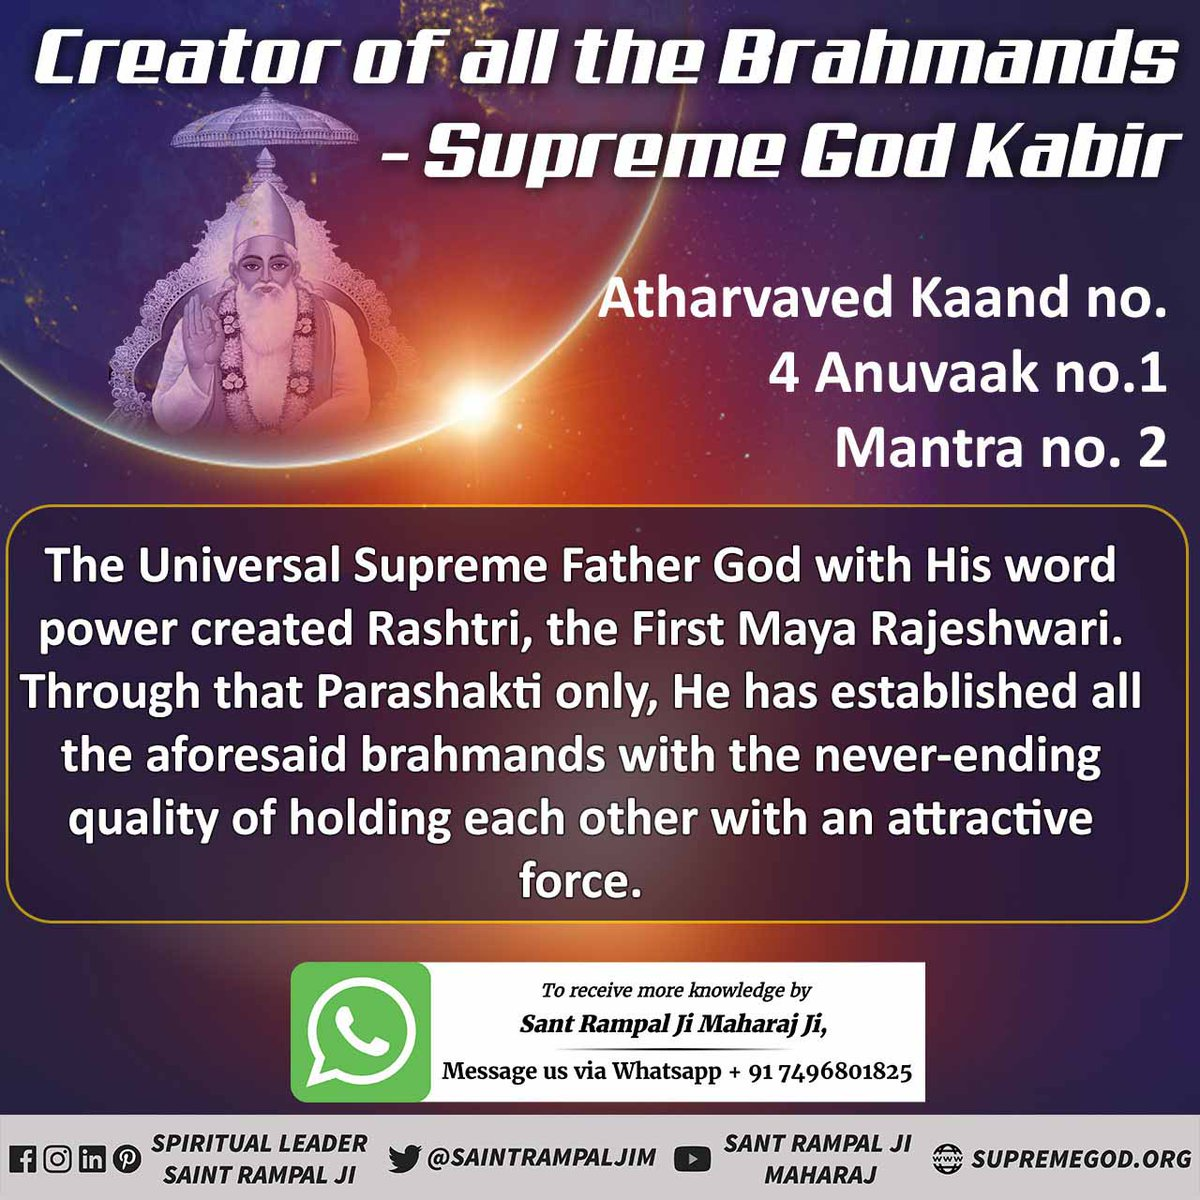 Creator Of all the Brahmand is #SupremeGodKabir Atharvaved Kaand No. 4 Anuvaak No. 1 Mantra 2.